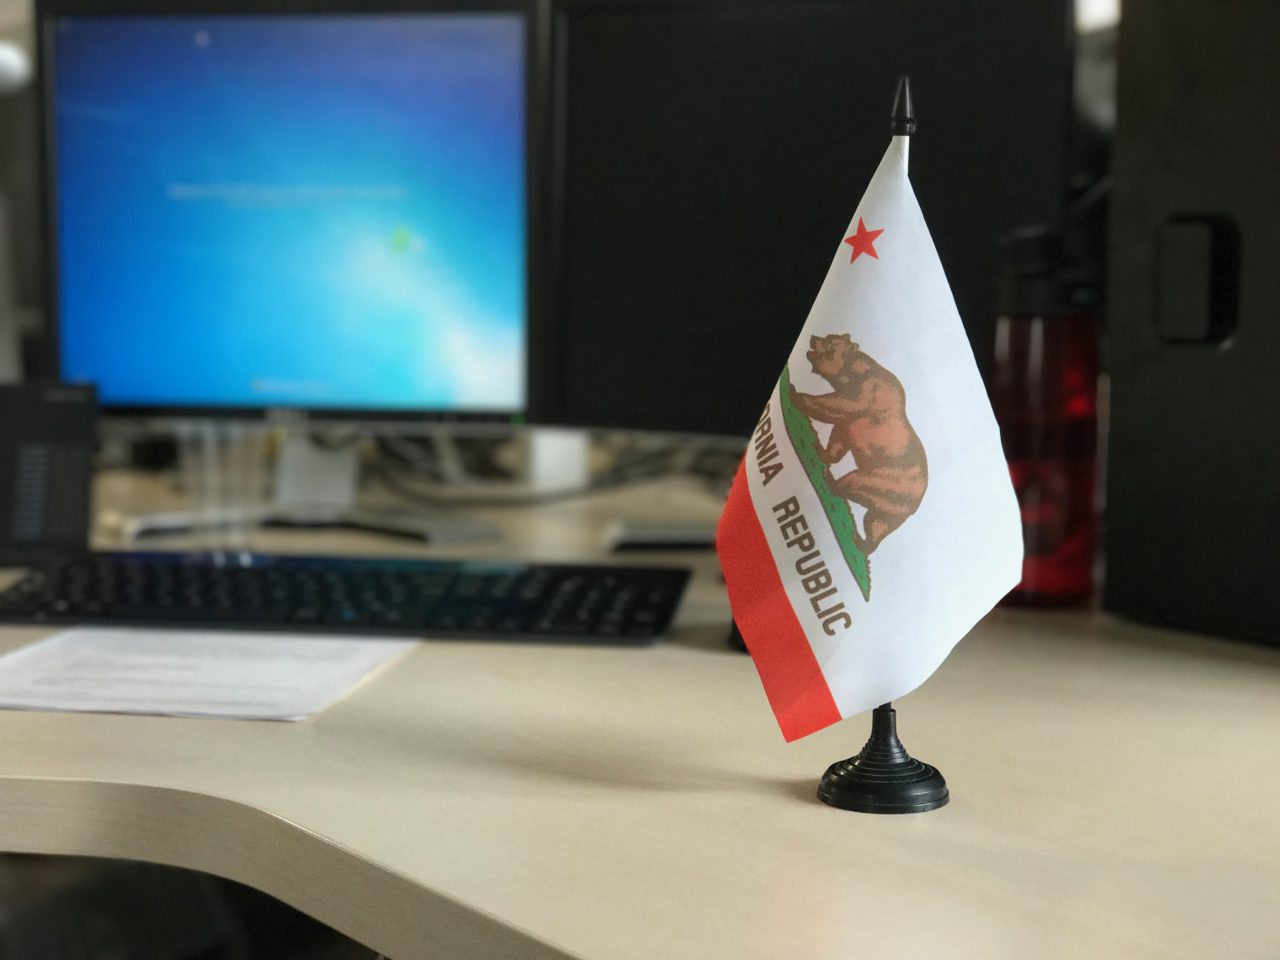 depth-effect-mode-portrait-california-flag